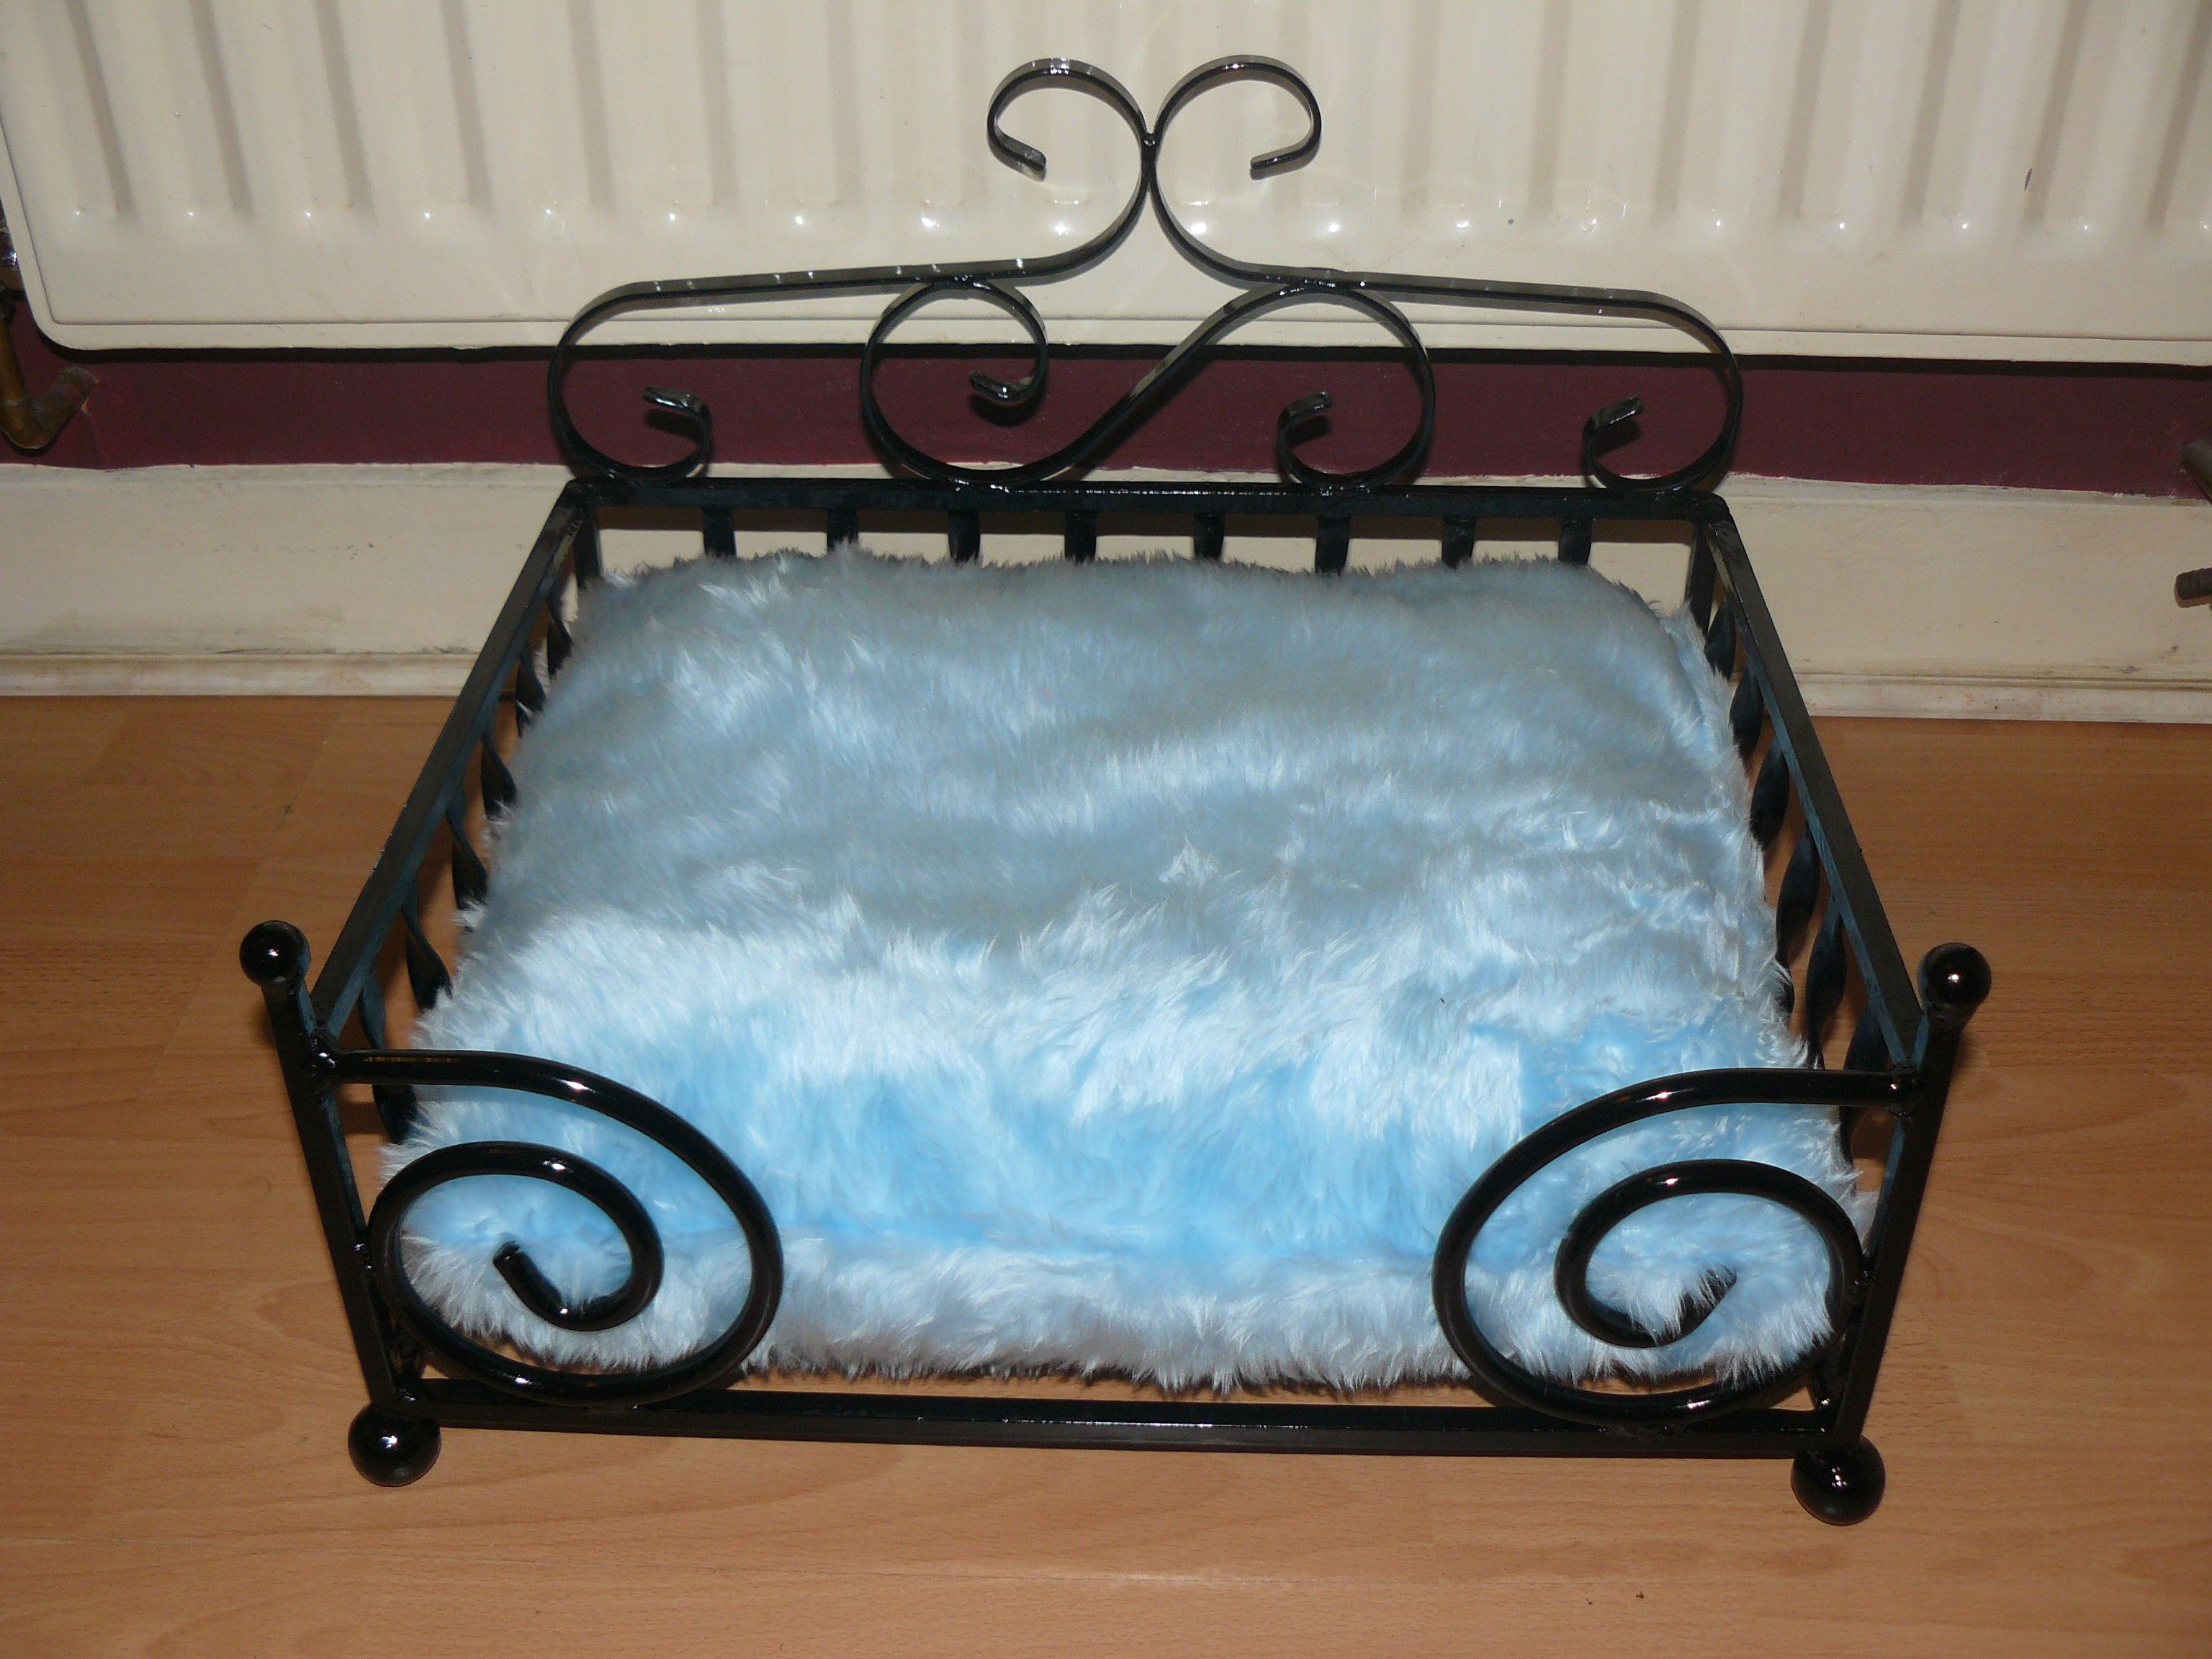 Dog Bed Wrought Iron Small Diva With Cushion Black Metal Pet Bed Dog Bed Wrought Iron Dog House Bed